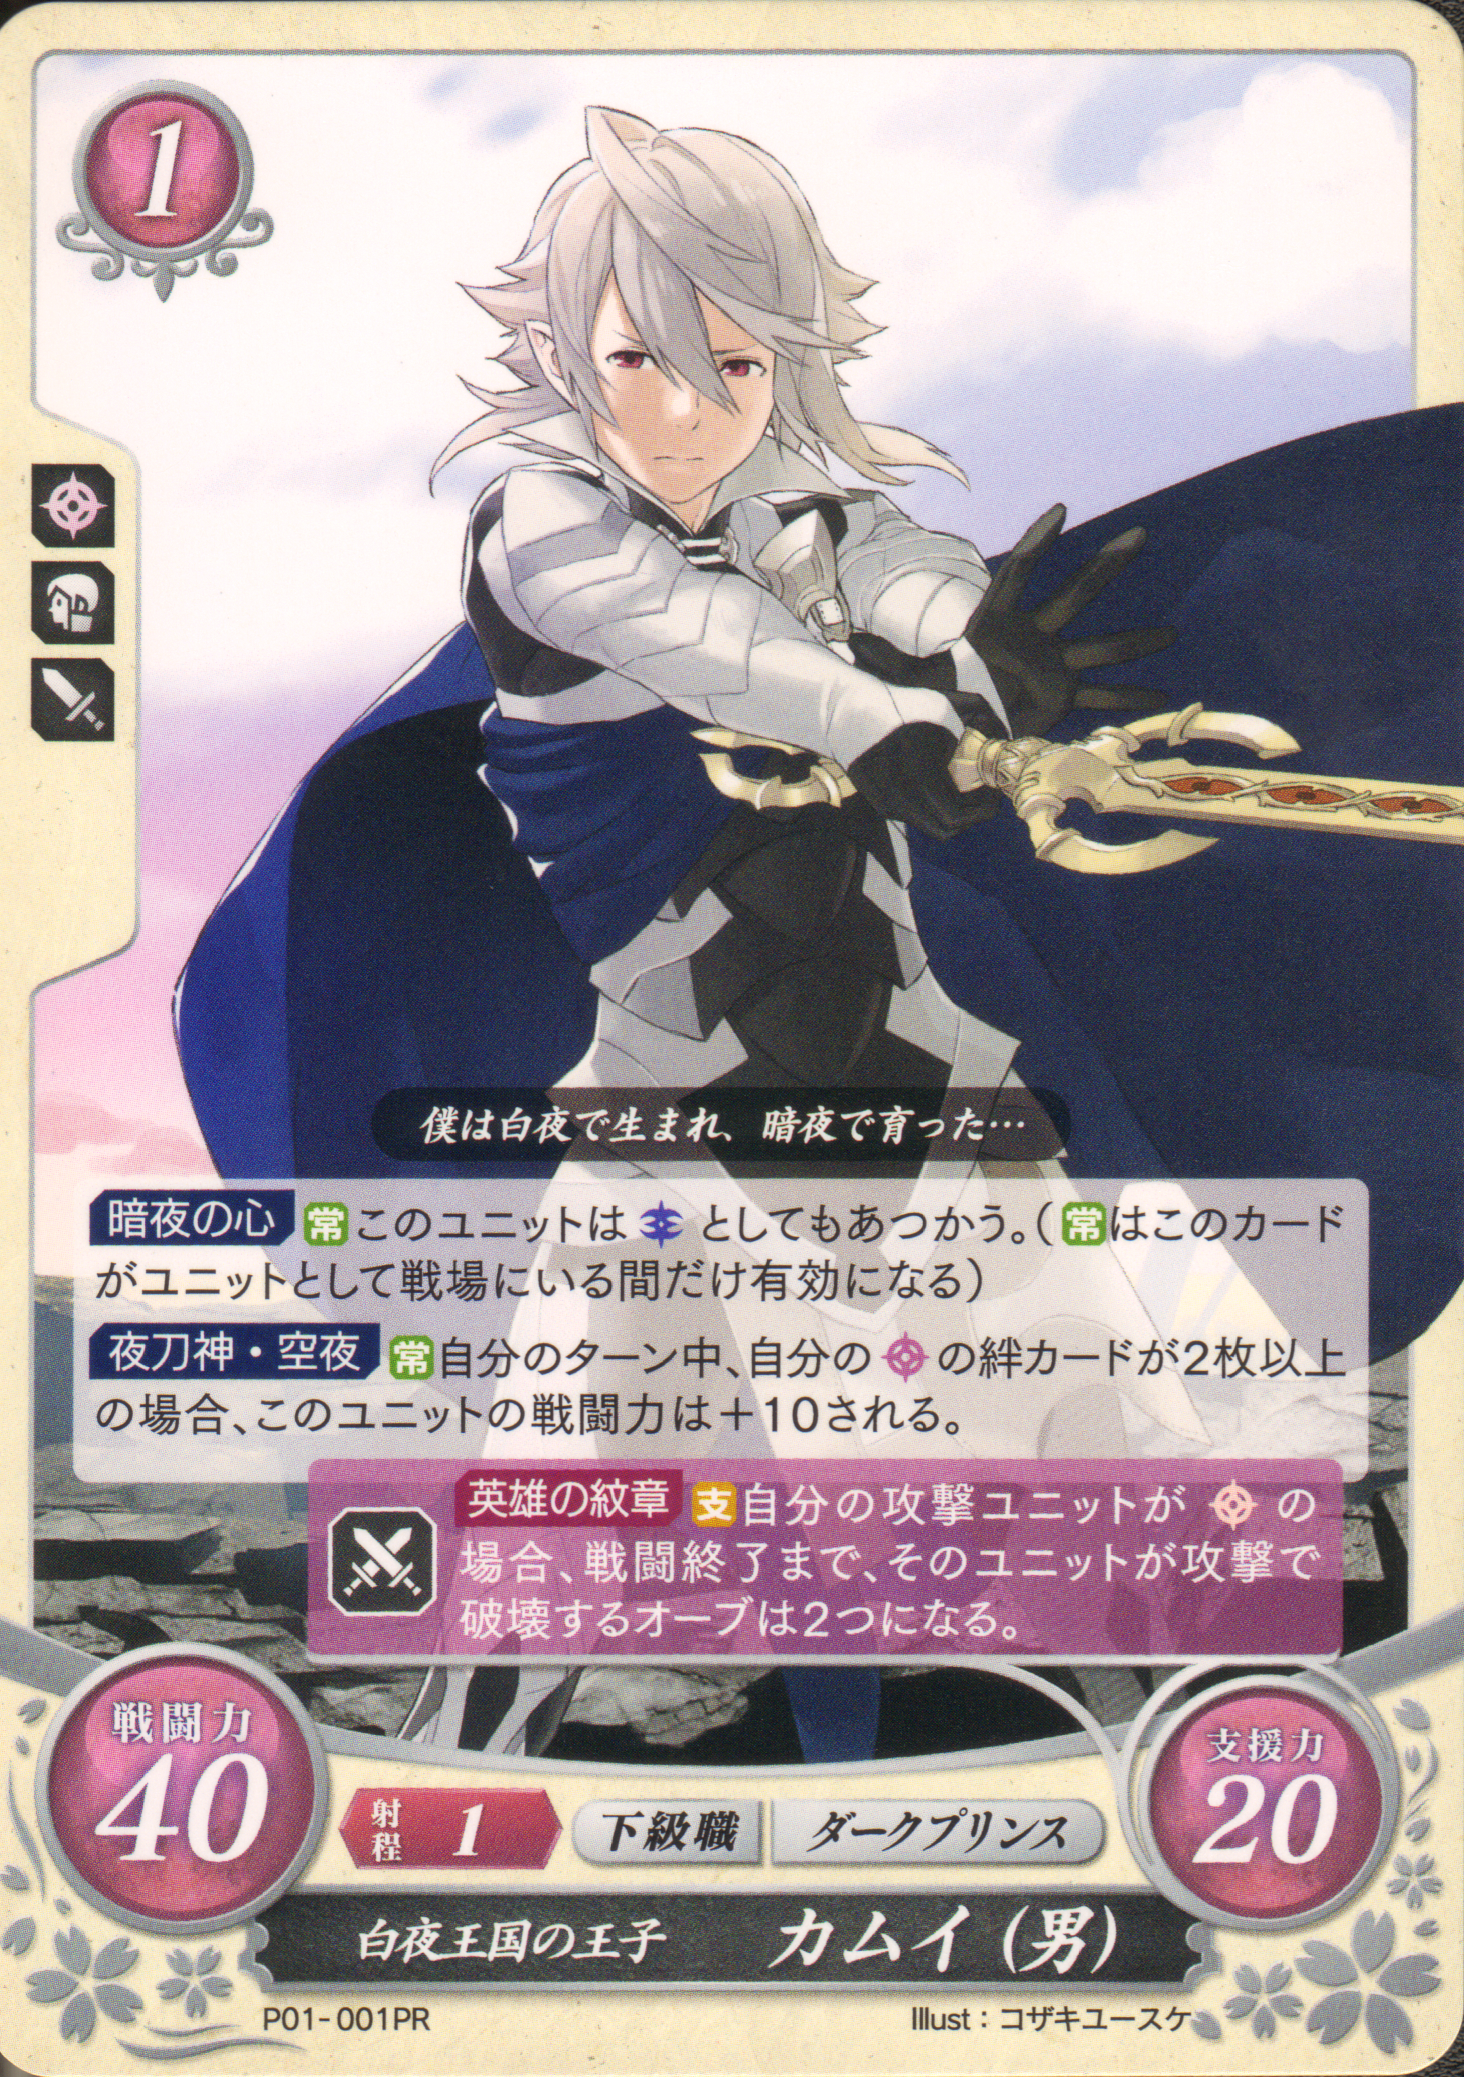 P17-014PR Fire Emblem 0 Cipher Mint FE Three Houses Heroes Byleth Male